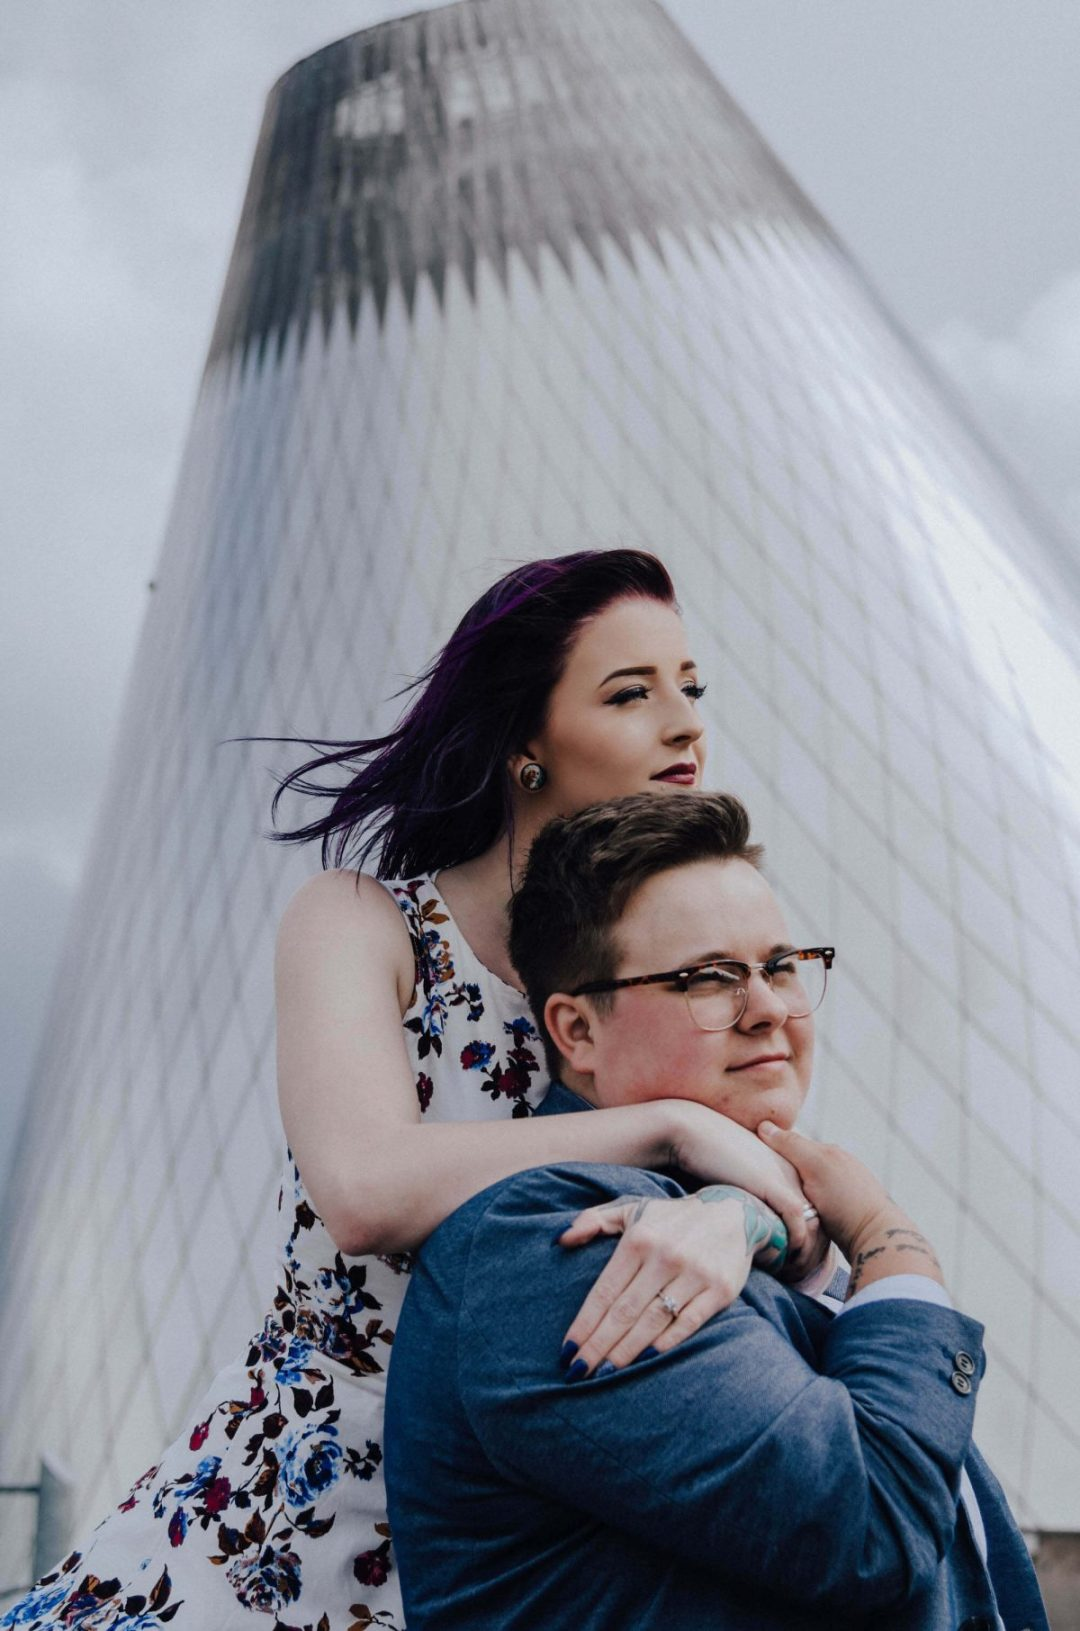 tacoma-glass-museum, tacoma-engagement, tacoma-engagement-photos, tacoma-engagement-session, engagement-photographer, seattle-engagement-photographer, stadium-high-school, stadium-high-school-photos, seattle-wedding-photographer, tacoma-wedding-photographer,